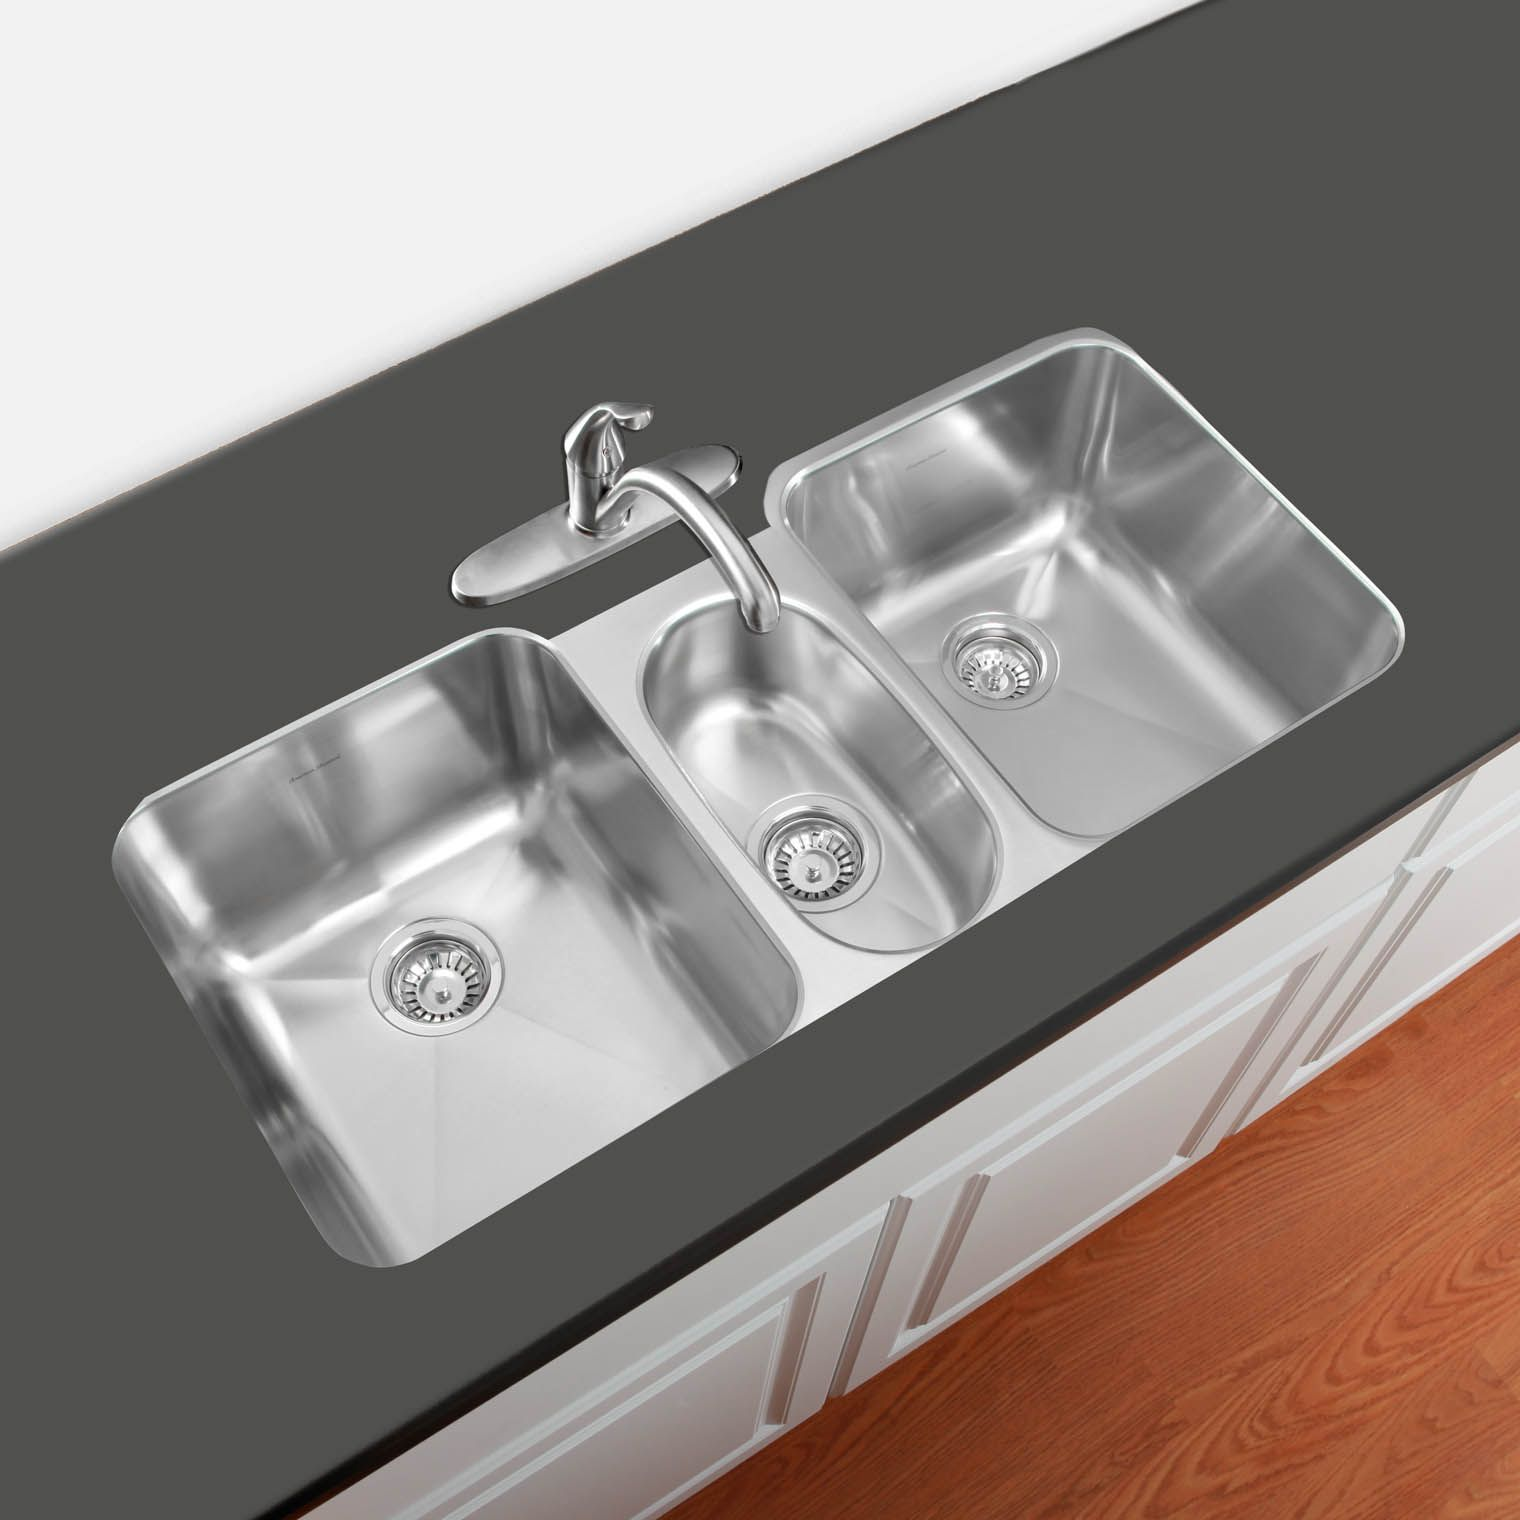 Pin By Sue Turriglio On Corner Sink In 2020 Single Basin Kitchen Sink Outdoor Kitchen Sink Kitchen Sinks For Sale